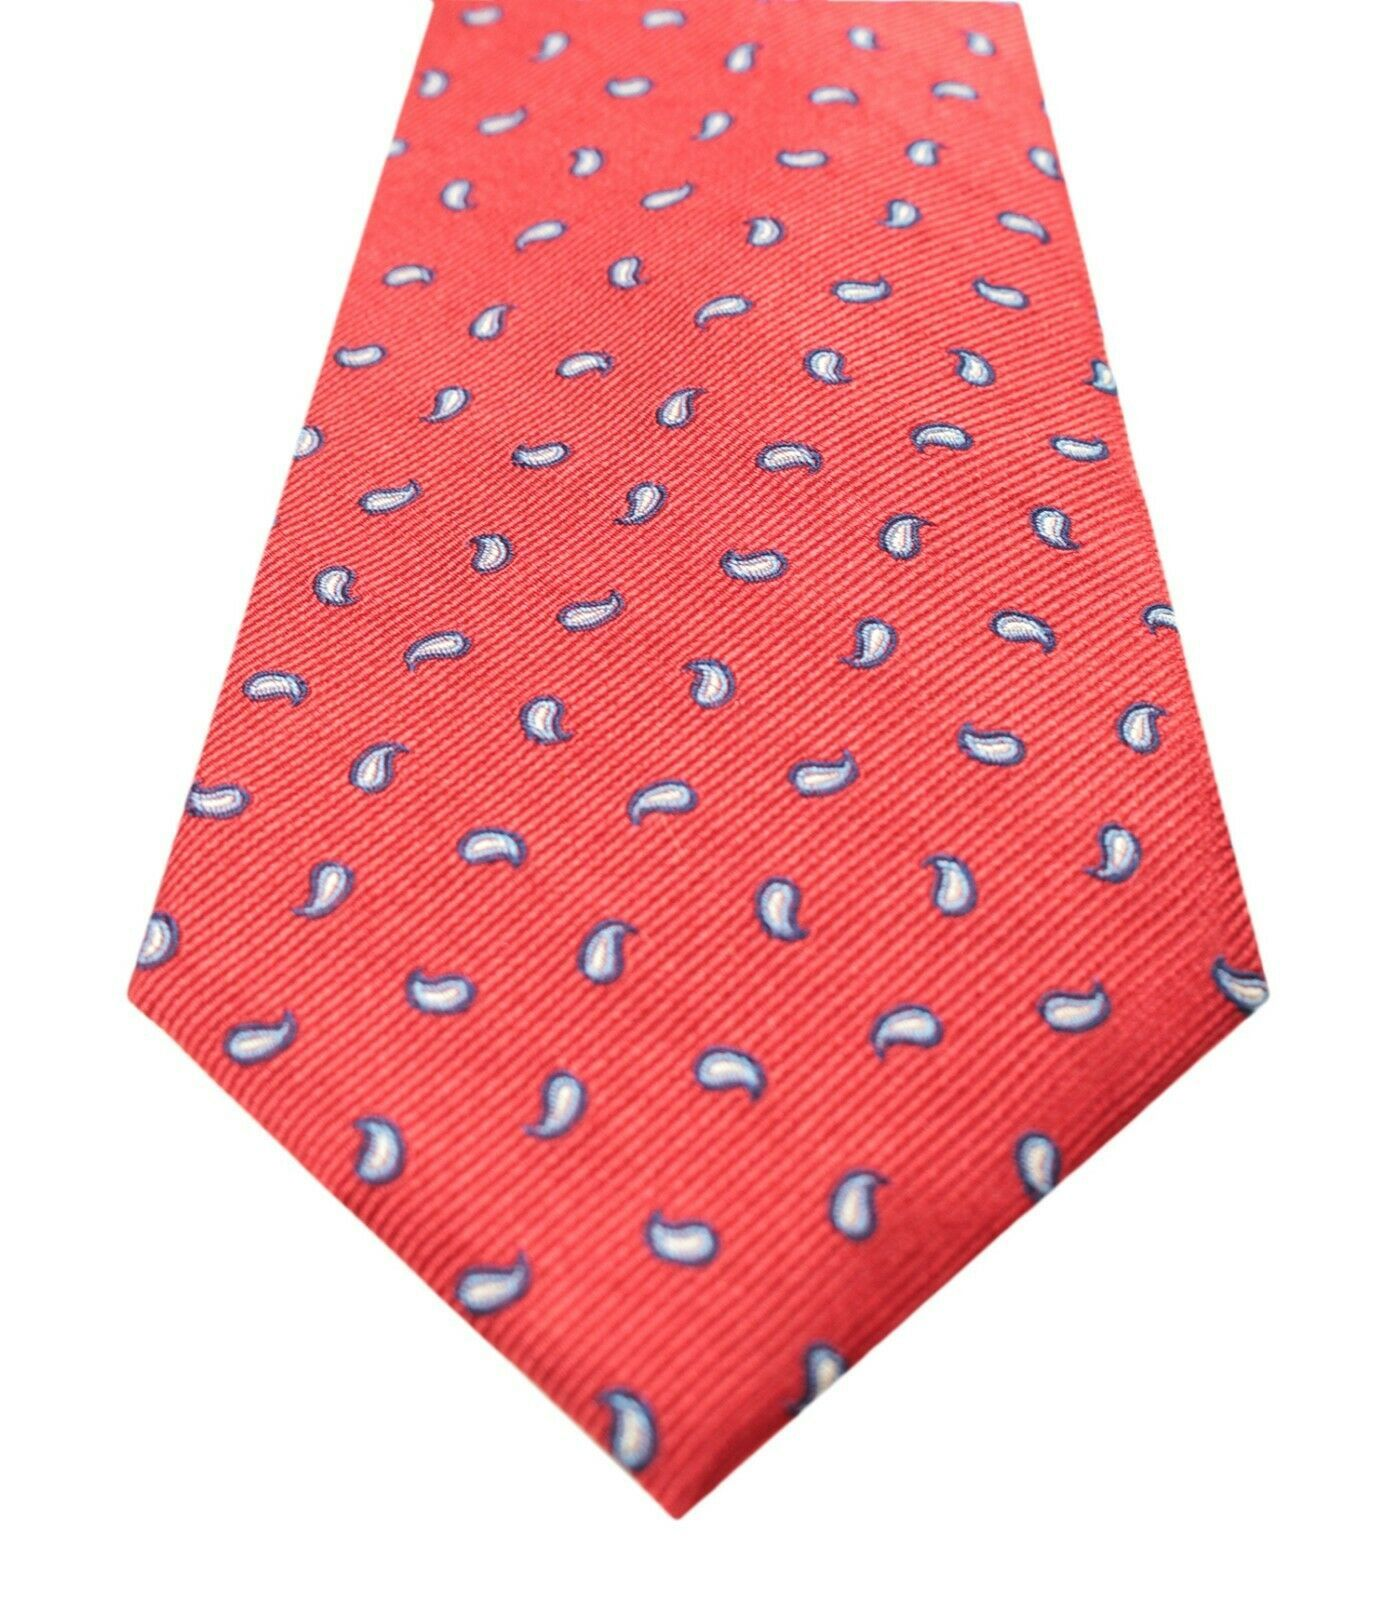 NEW MENS CLUB ROOM ESTATE NECKWEAR CLASSIC PINE RED PAISLEY SILK NECK TIE $52